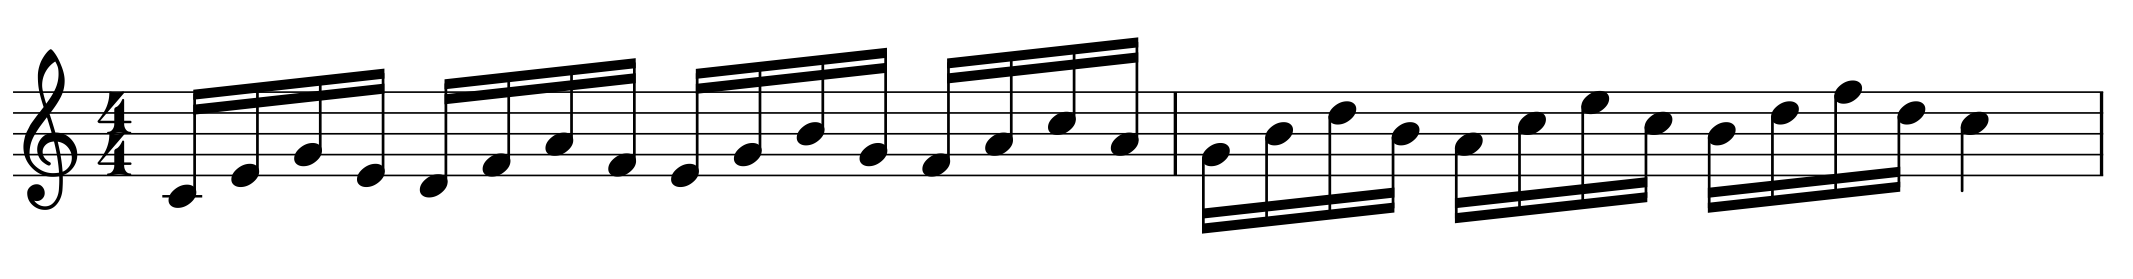 diatonic_exercise_from_Rossini-1